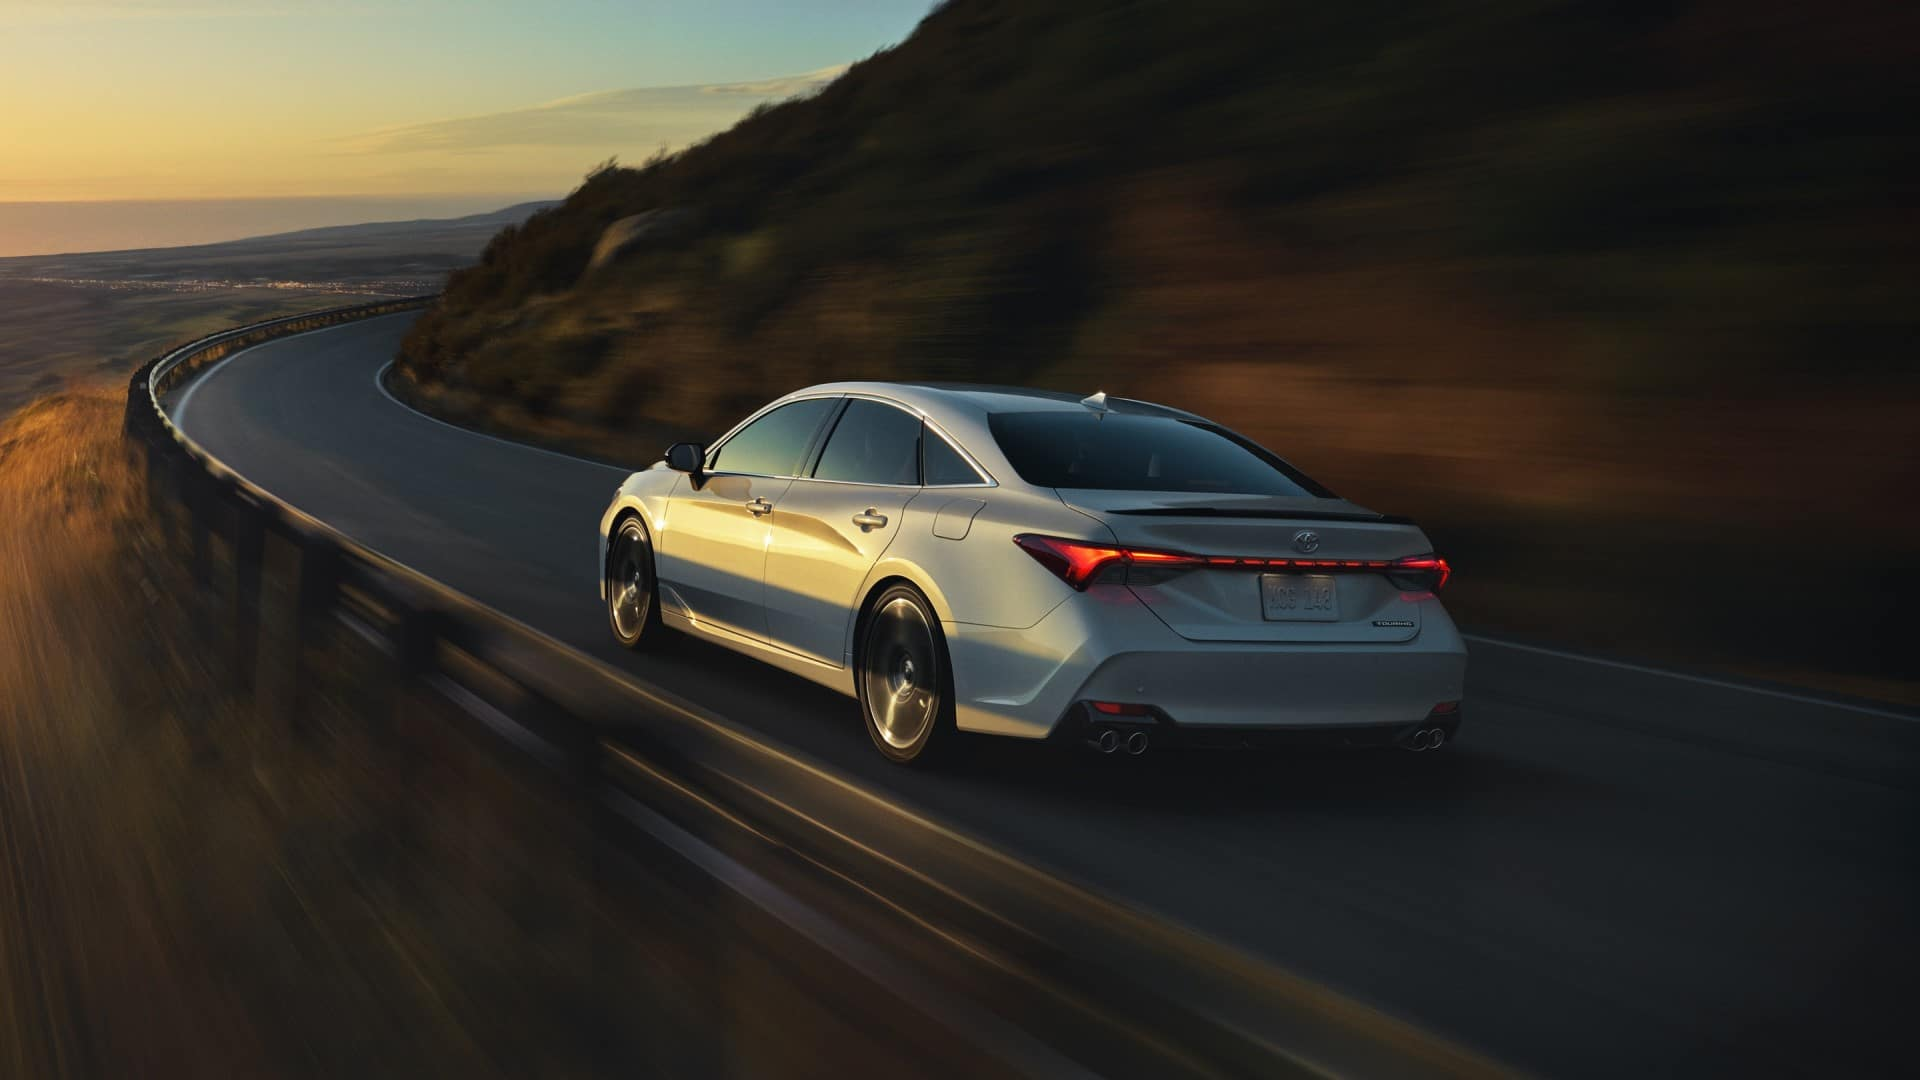 Toyota_Avalon_Driving_Rear_View